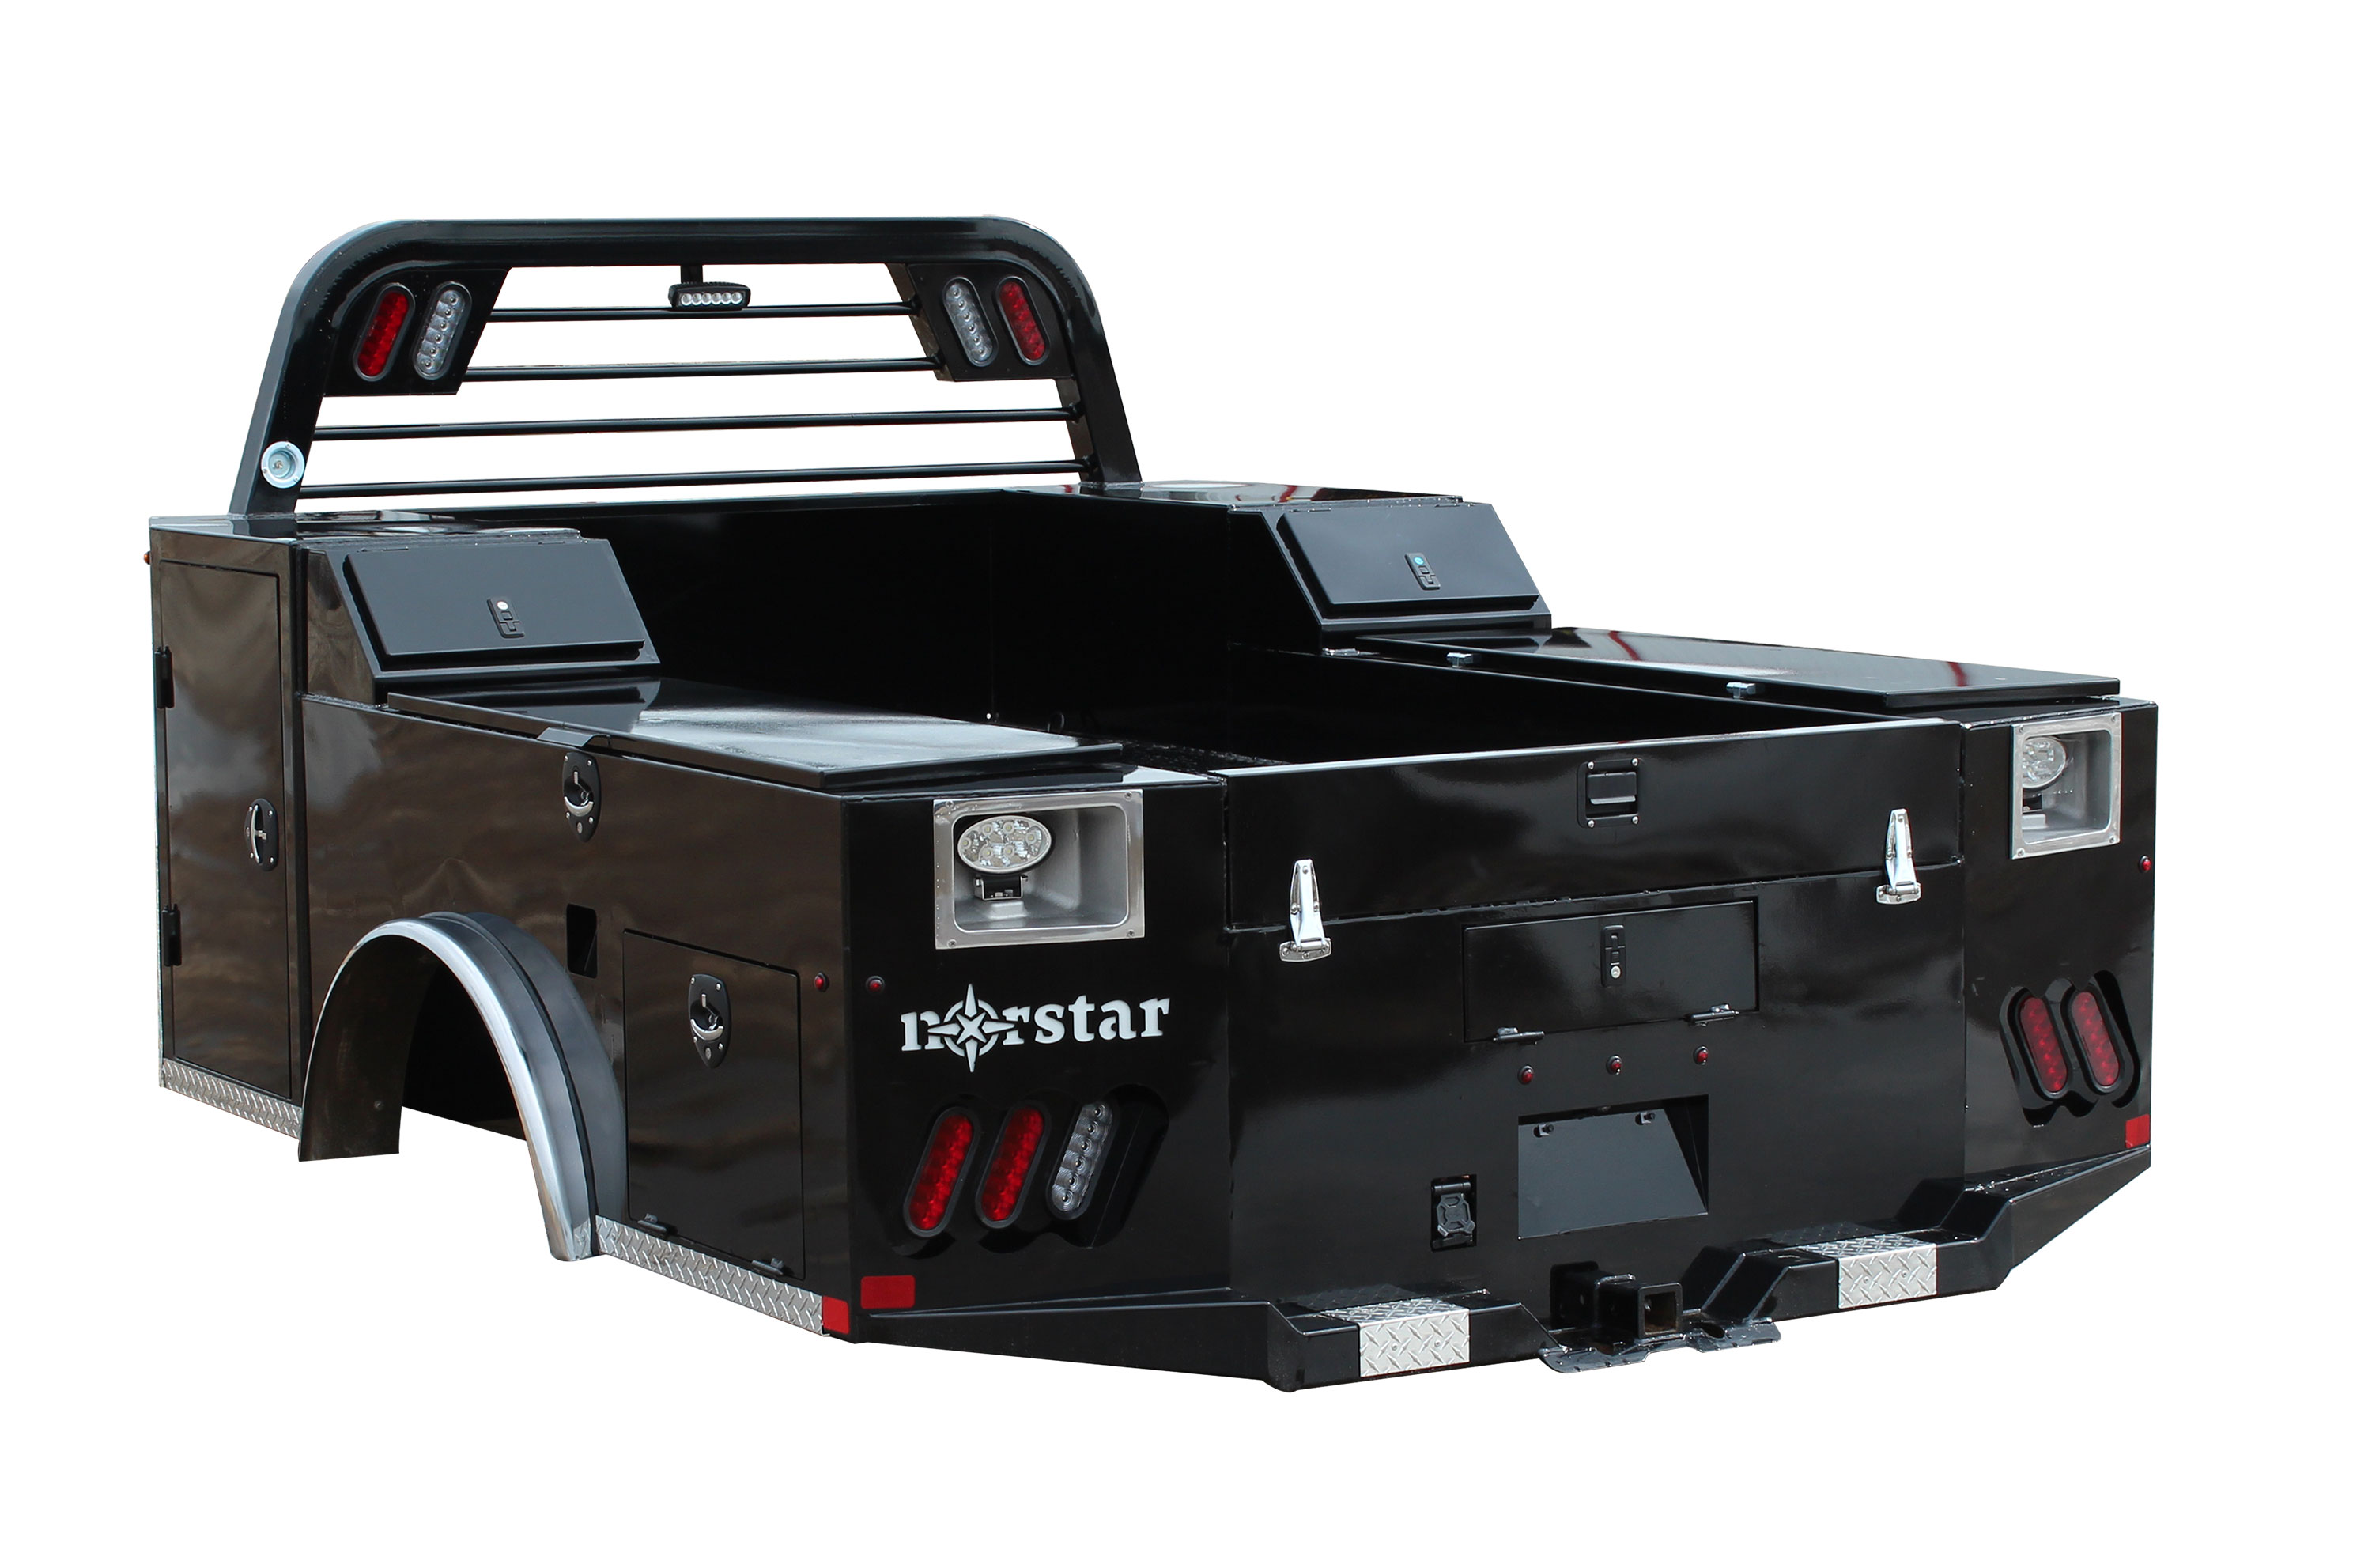 Sd Norstar Service Bed Trailers In El Paso Tx Red Barn Trailers Trailer Dealer In El Paso For Enclosed Cargo Utility Flatbed And Equipment Trailers